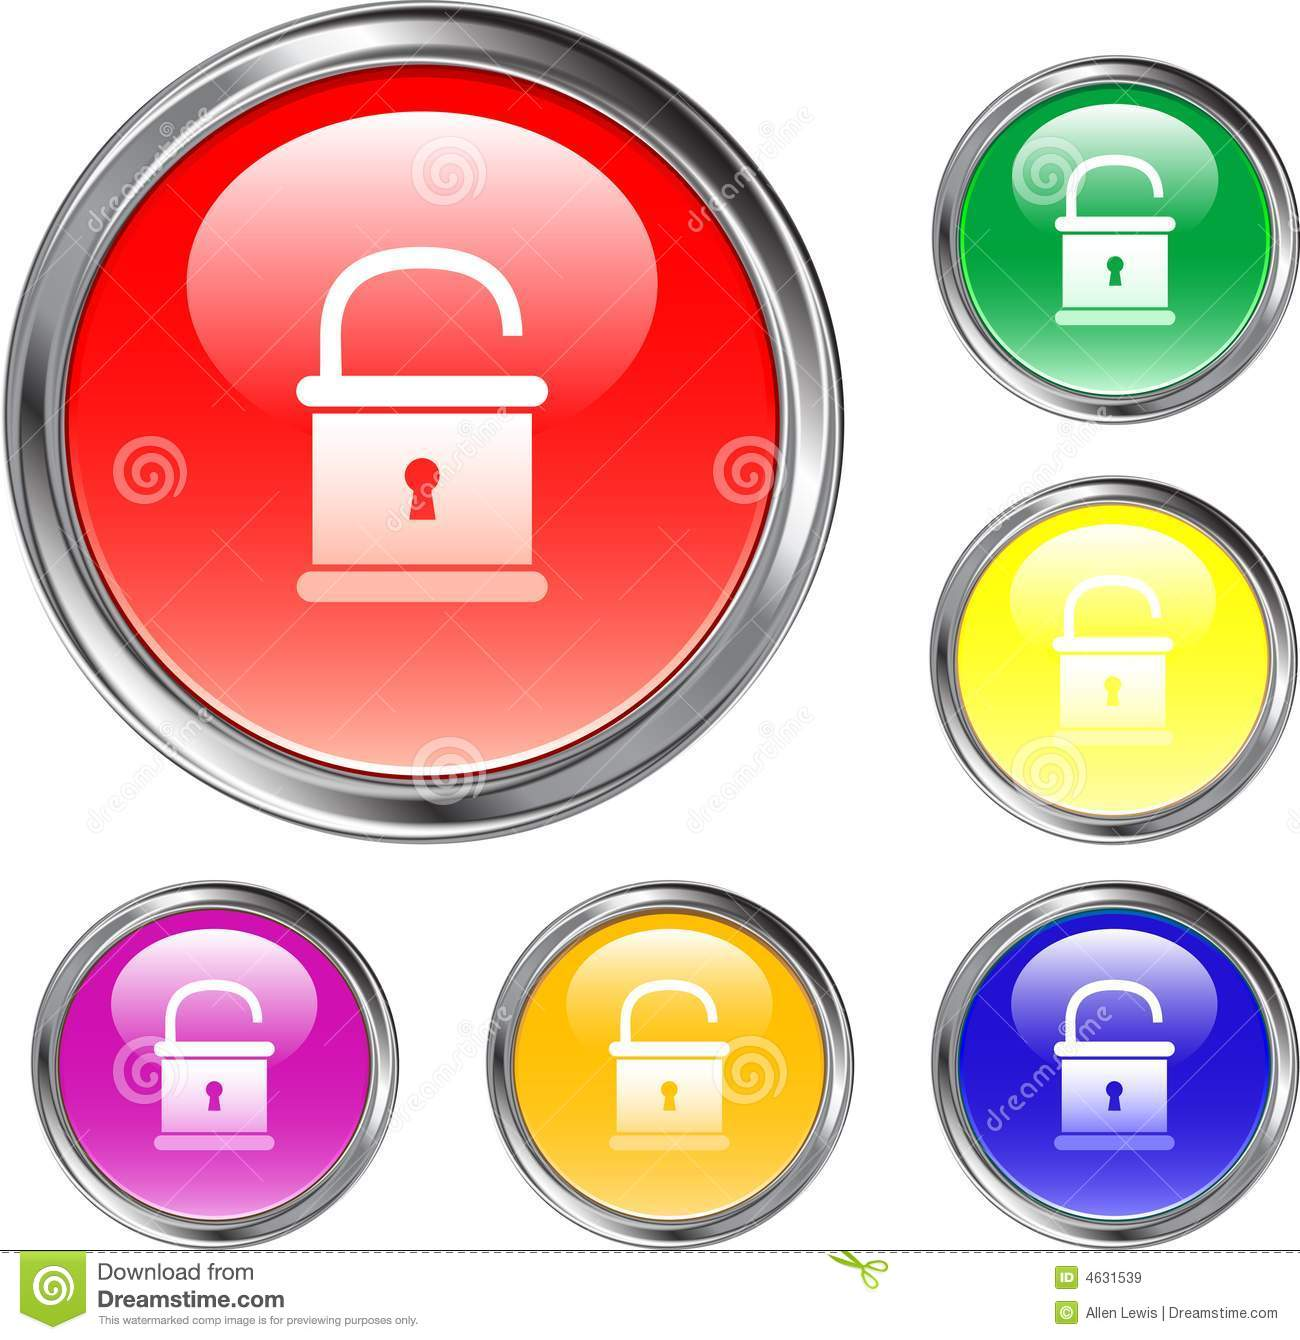 Unlocked Pad Lock Button Royalty Free Stock Images - Image: 4631539